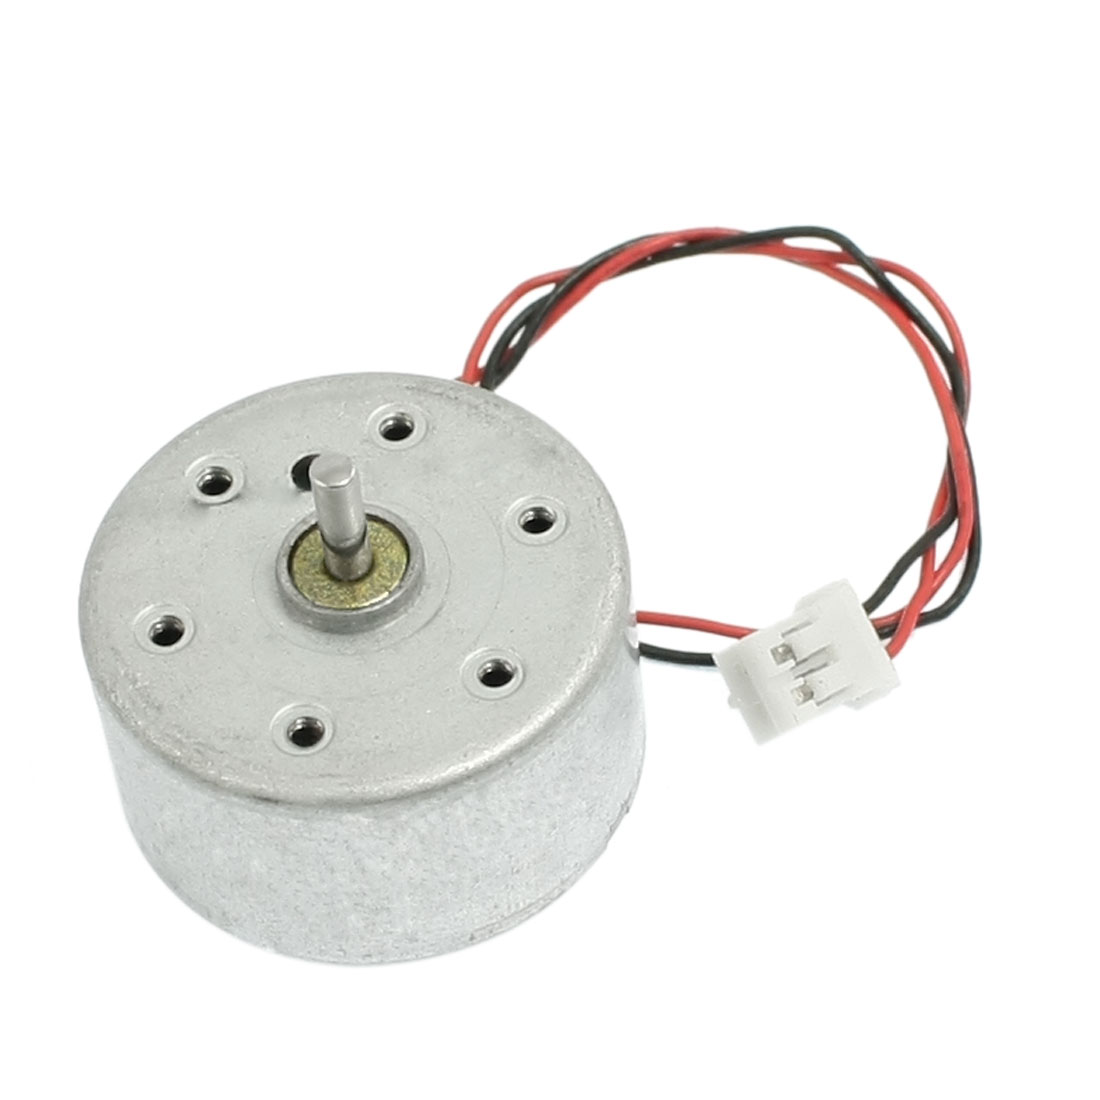 Silver Tone 2mm Dia Shaft 6000RPM Synchronous Motor DC 3V